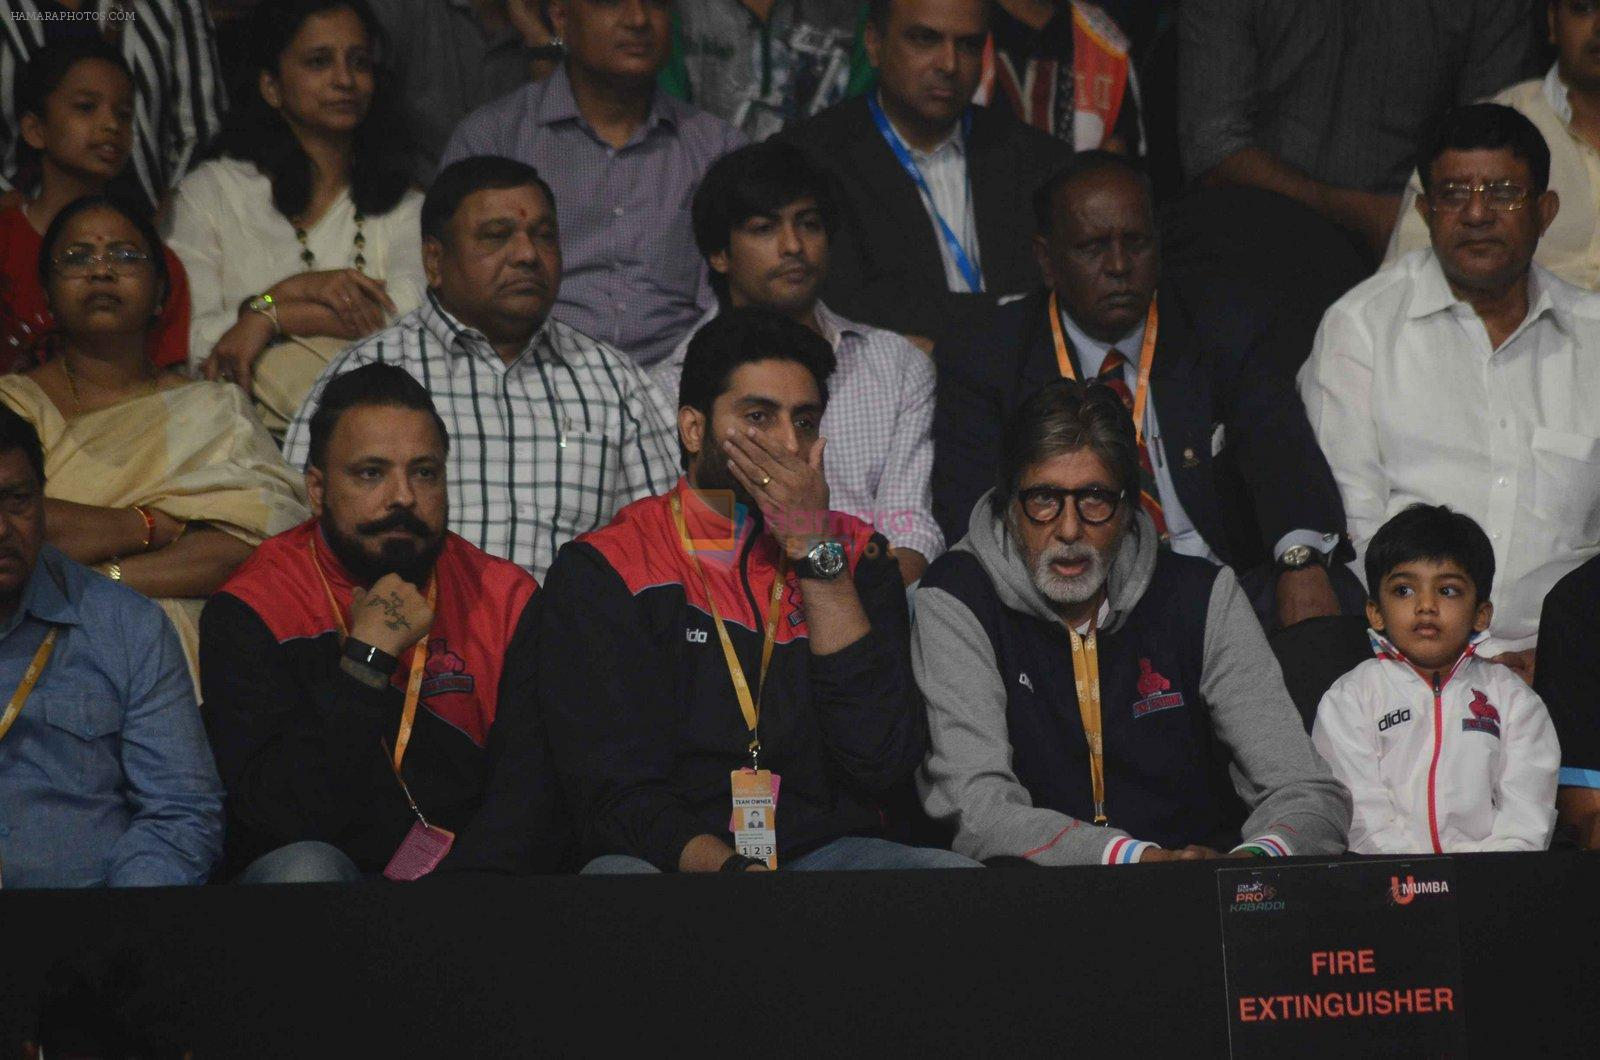 Abhishek Bachchan and Amitabh Bachchan at prokabaddi match on 28th Feb 2016